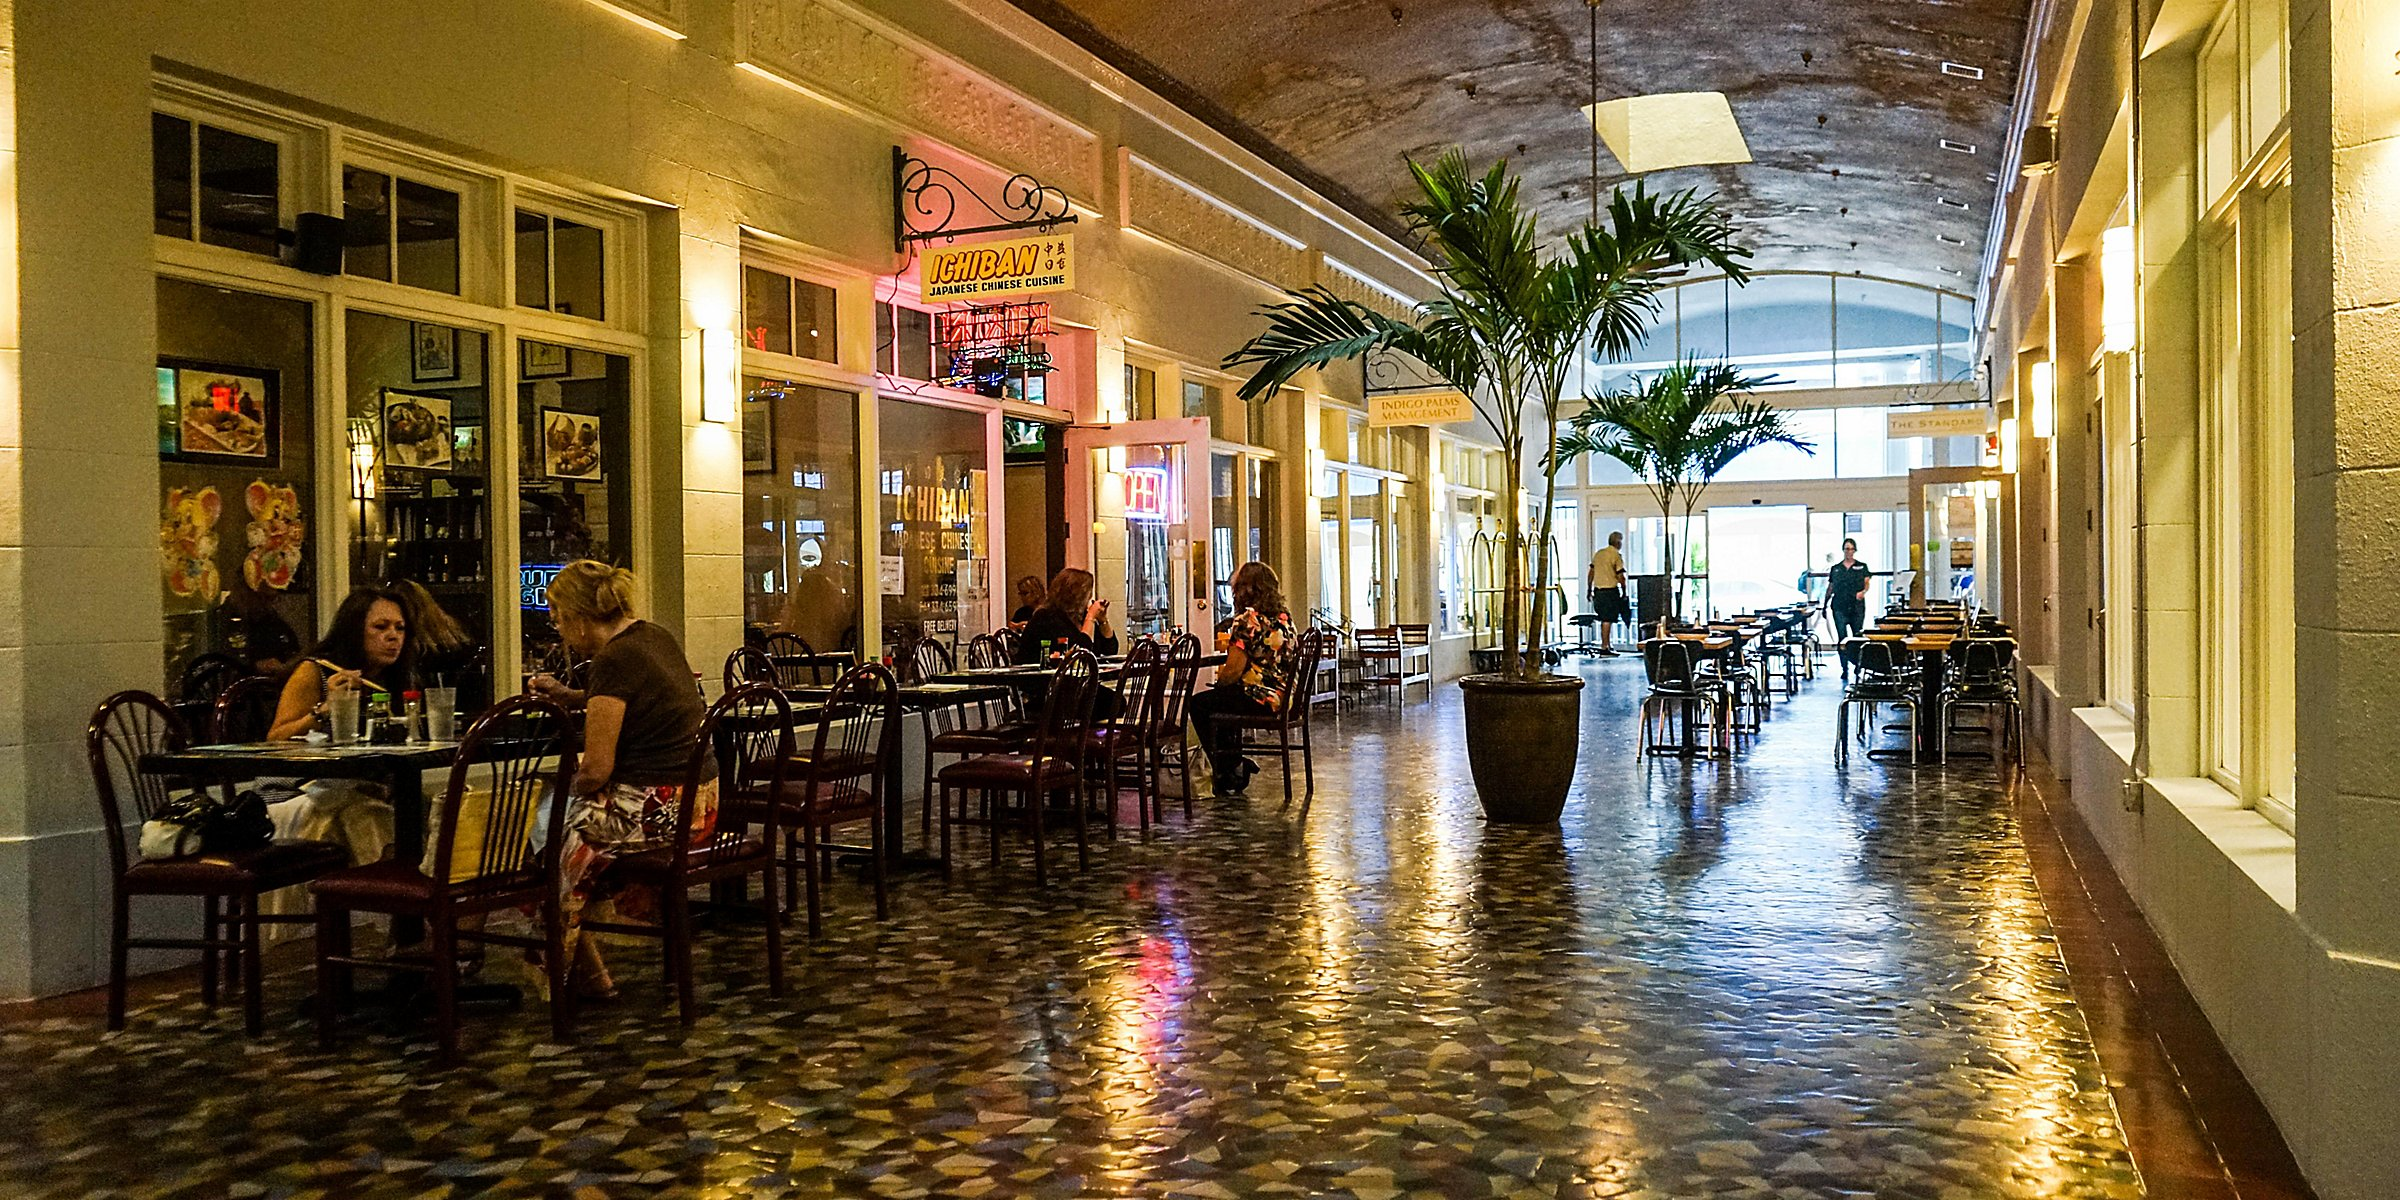 Fort Myers Hotels Hotel Indigo Ft Myers Dtwn River District